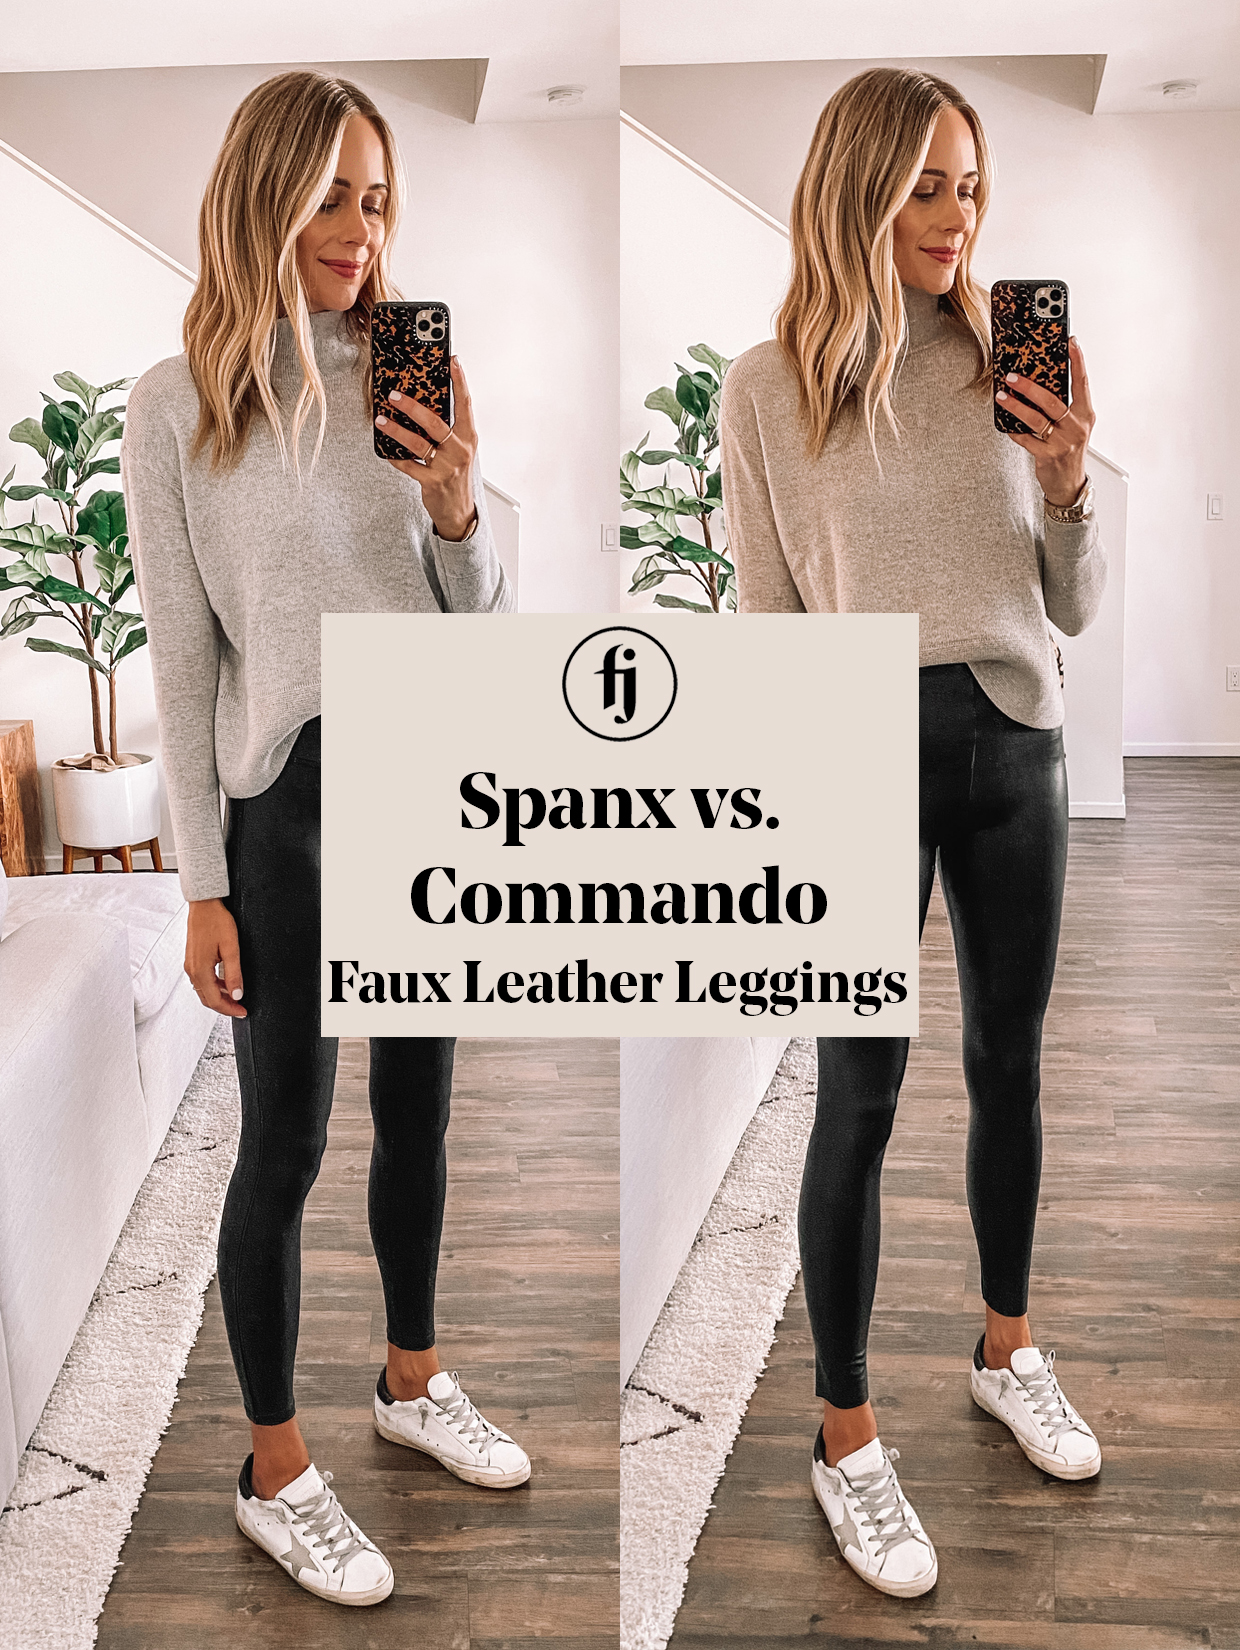 75 Percent Off Coupon Spanx 2020